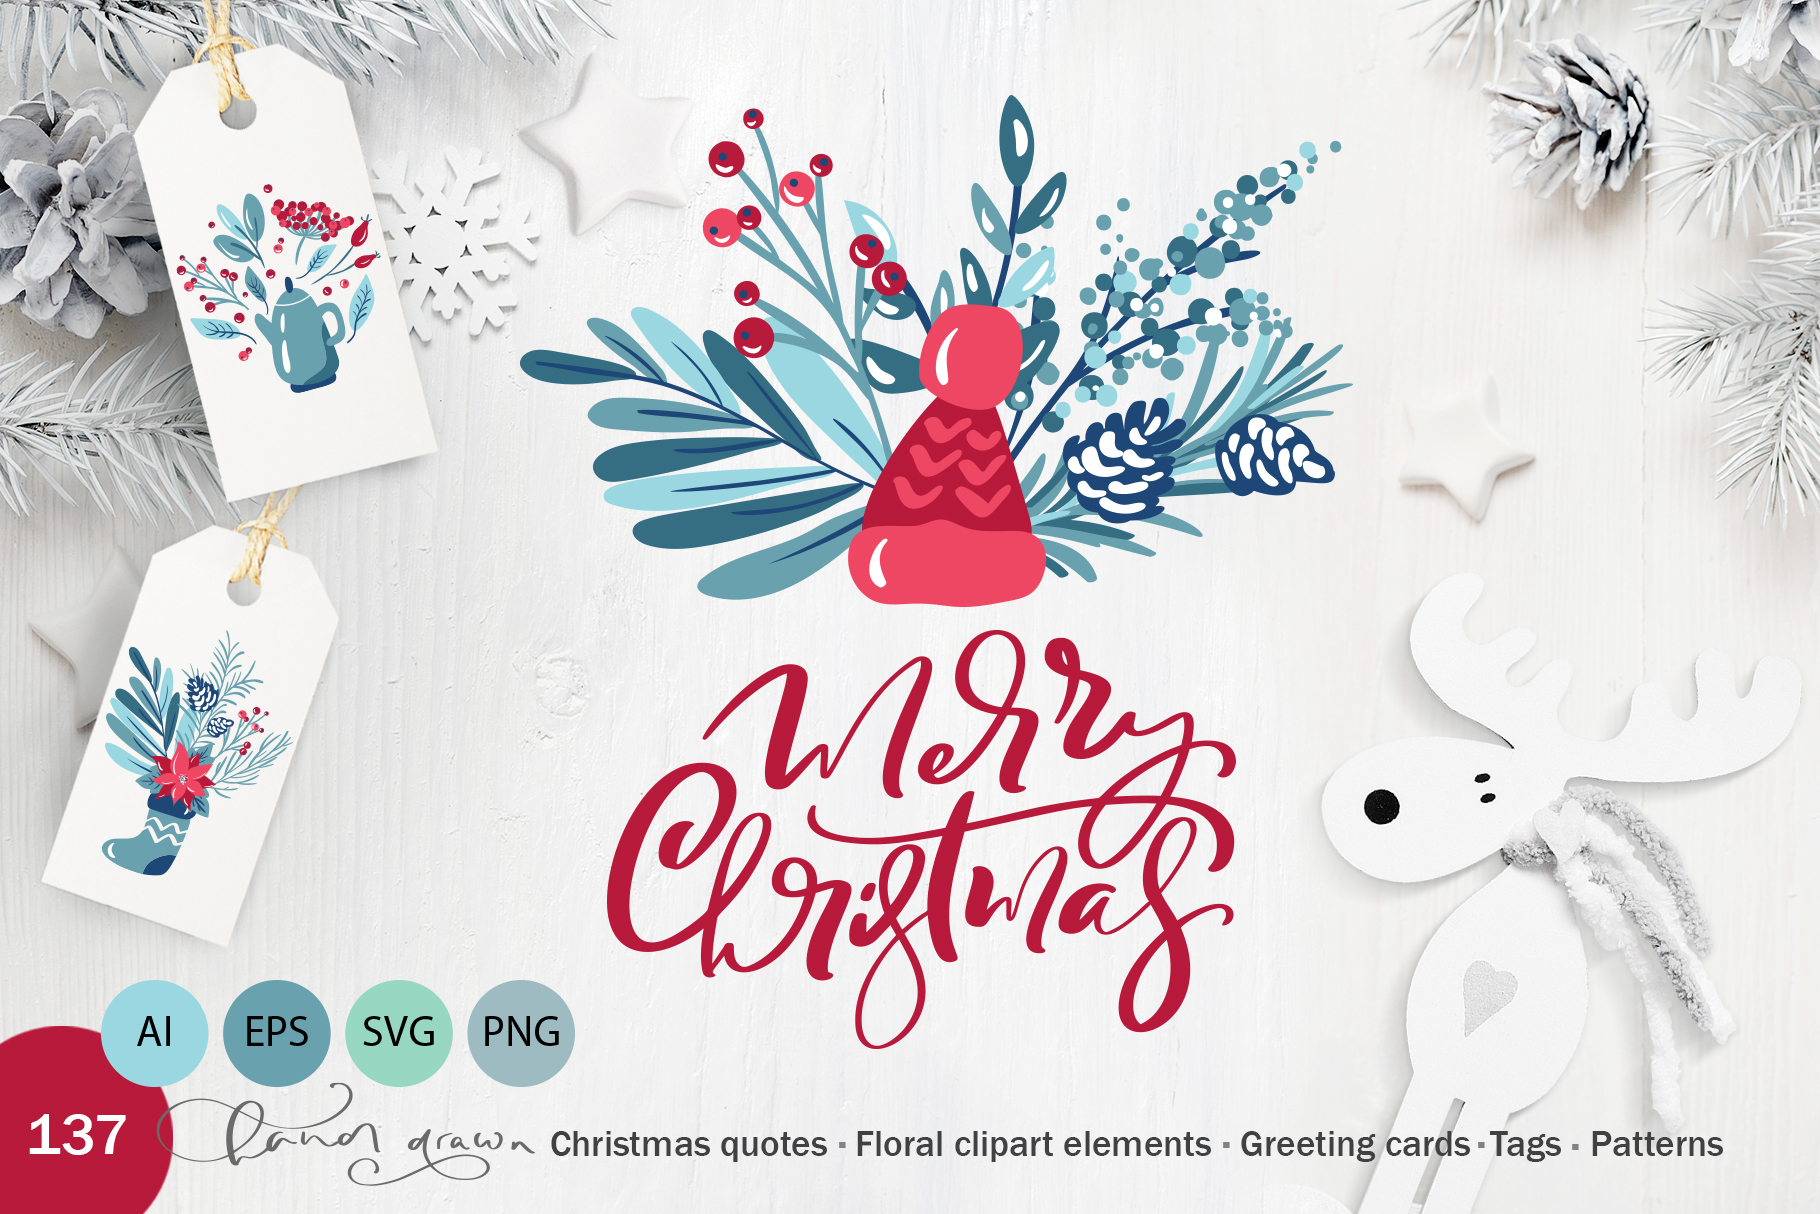 Download Free Floral Christmas Holiday Elements Graphic By Happy Letters for Cricut Explore, Silhouette and other cutting machines.